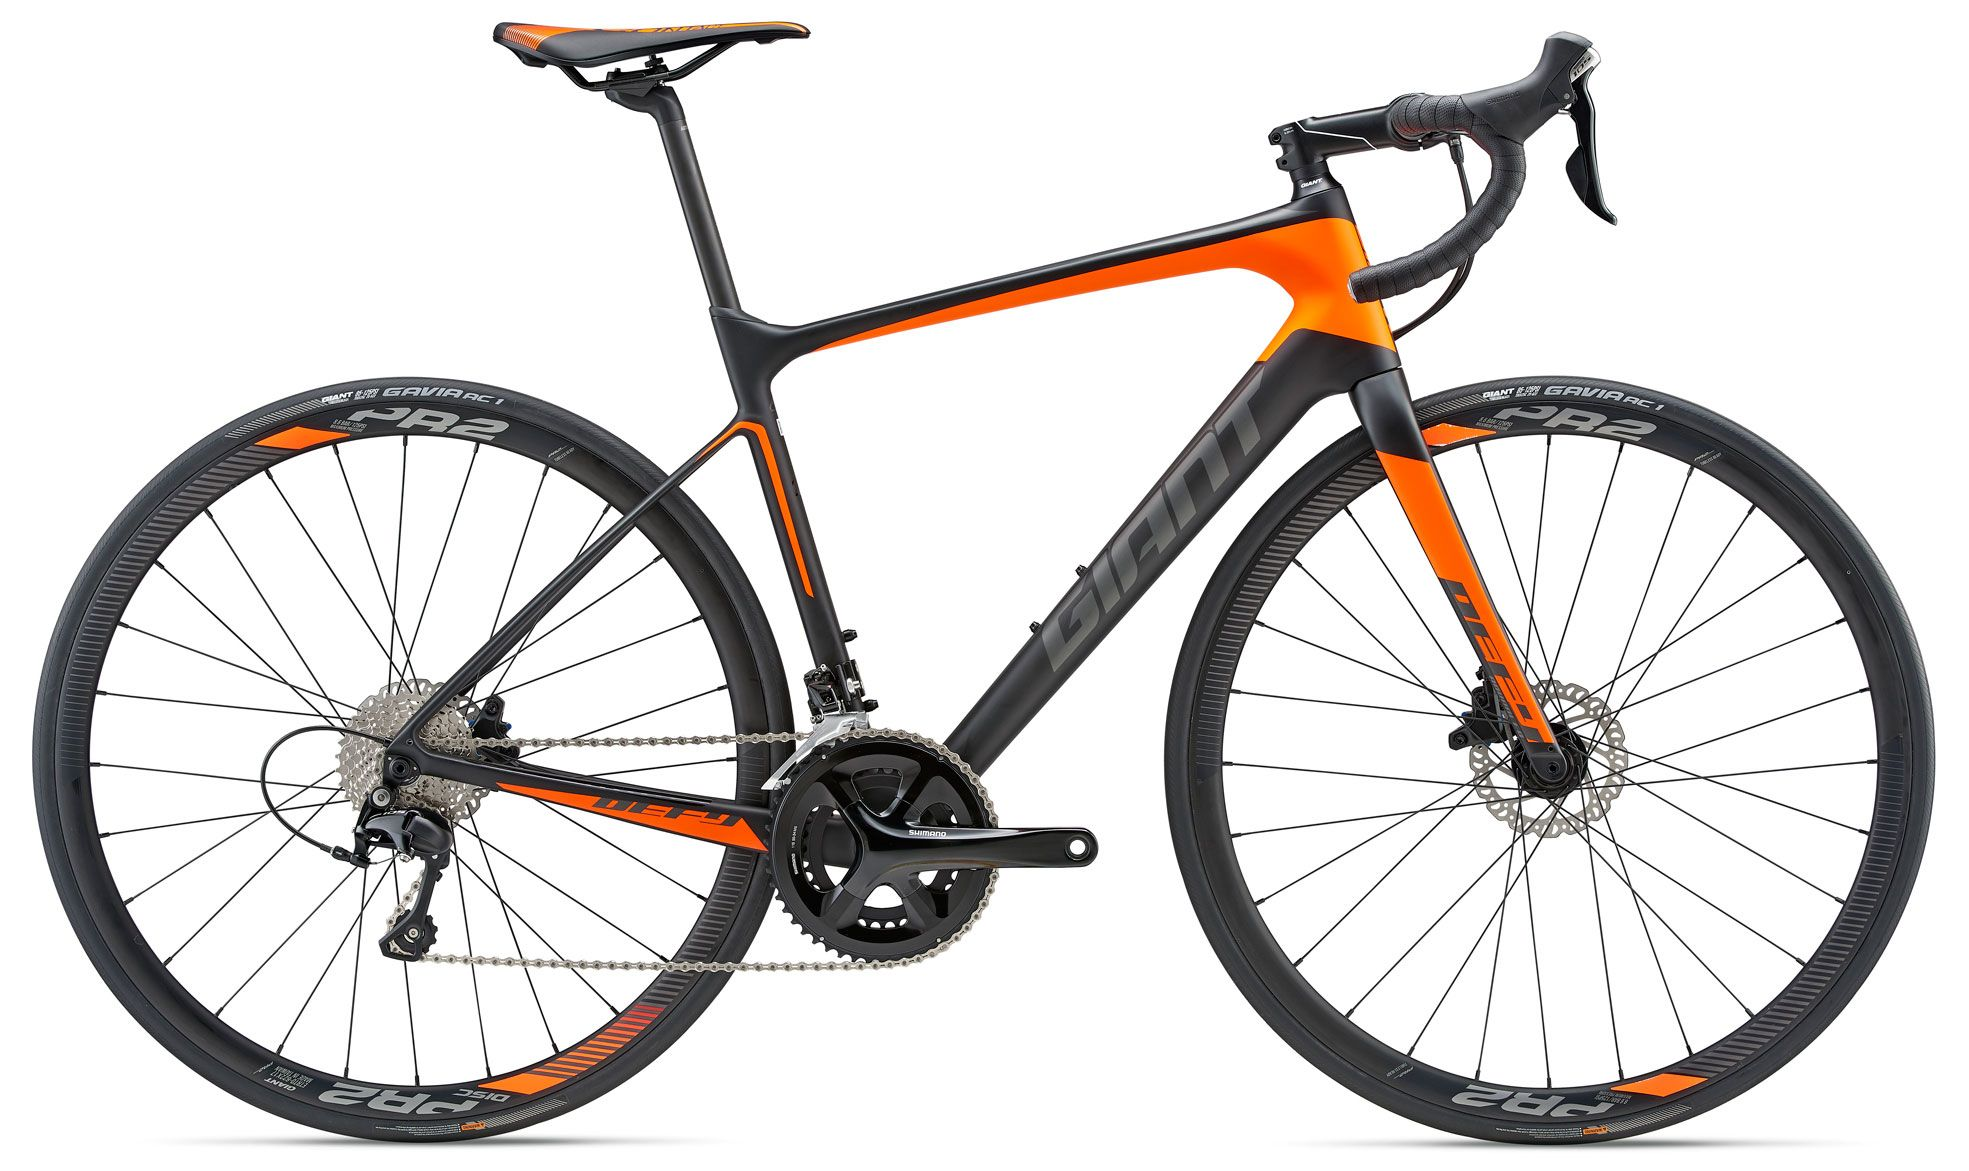 Велосипед Giant Defy Advanced 2 2018 велосипед giant xtc advanced 27 5 2 2016